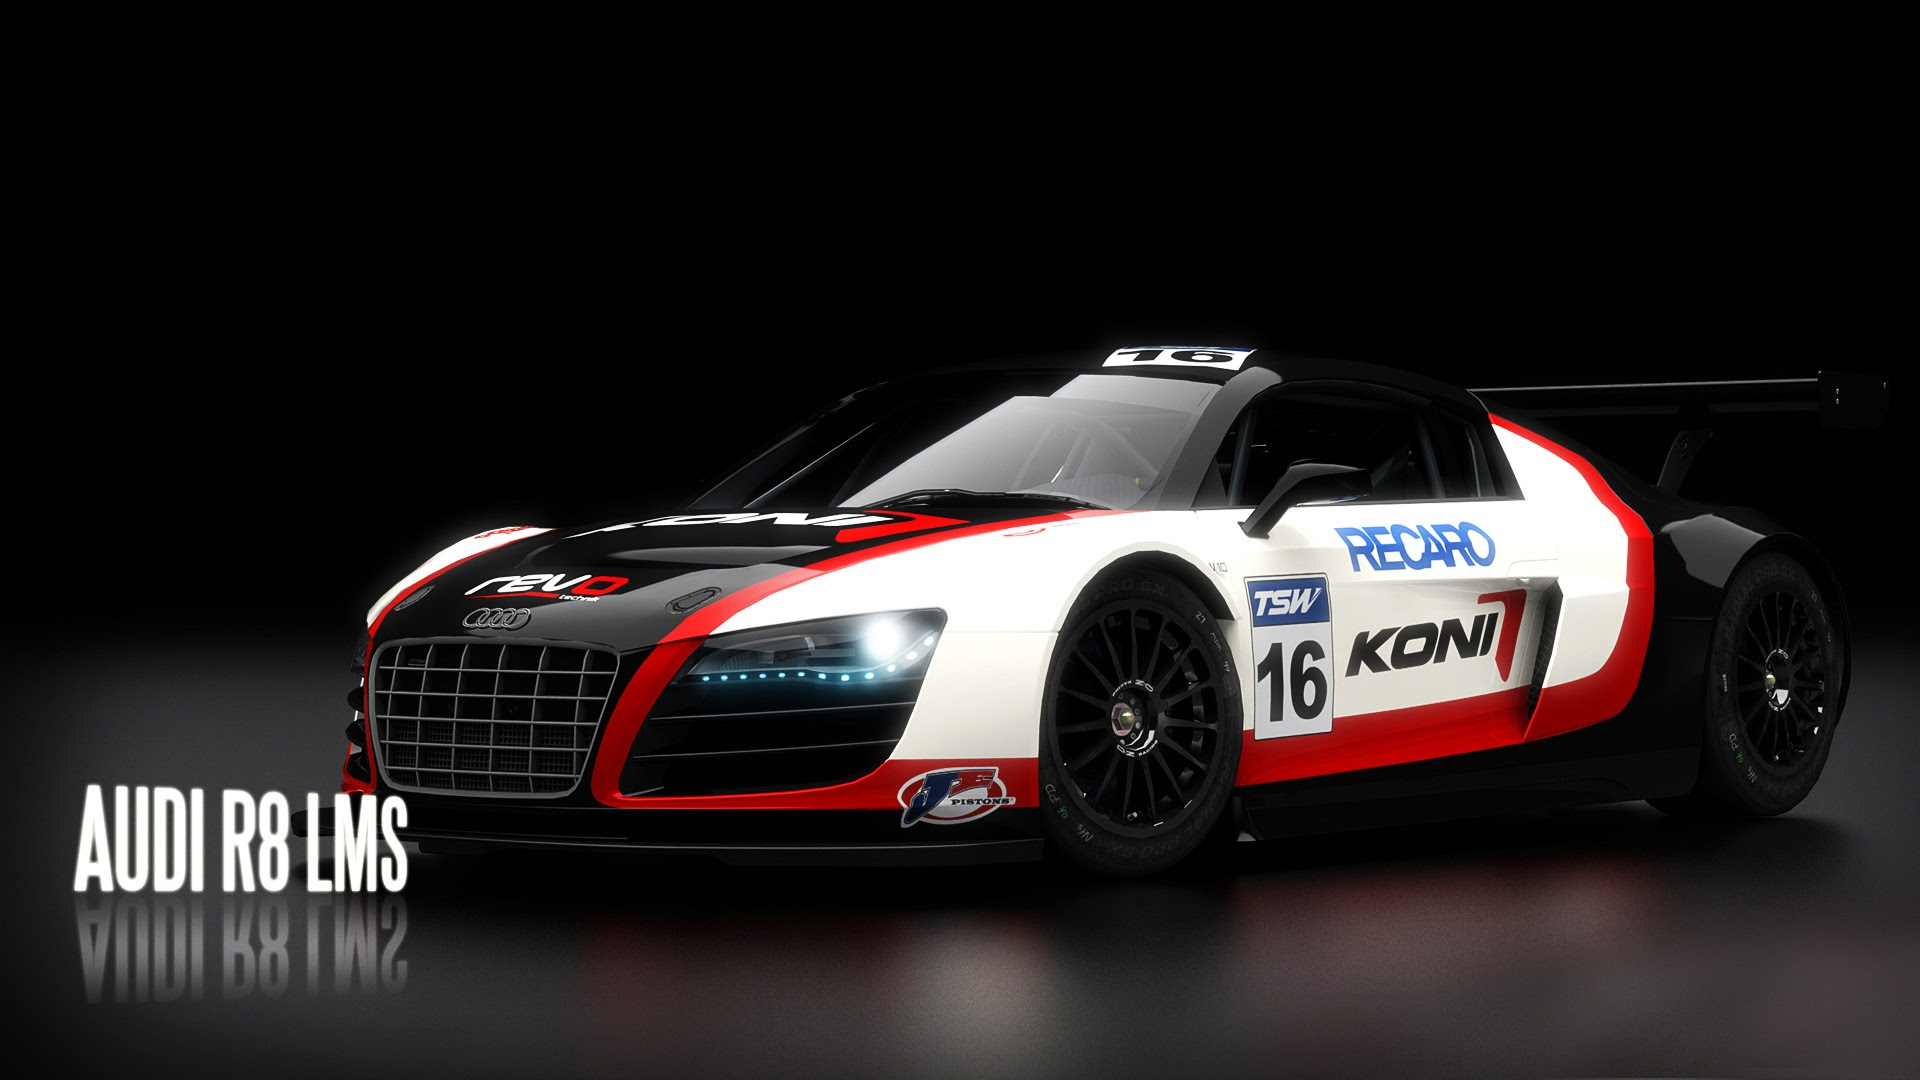 HD Wallpaper Mobil Audi Sport Wallpaper Dispenser